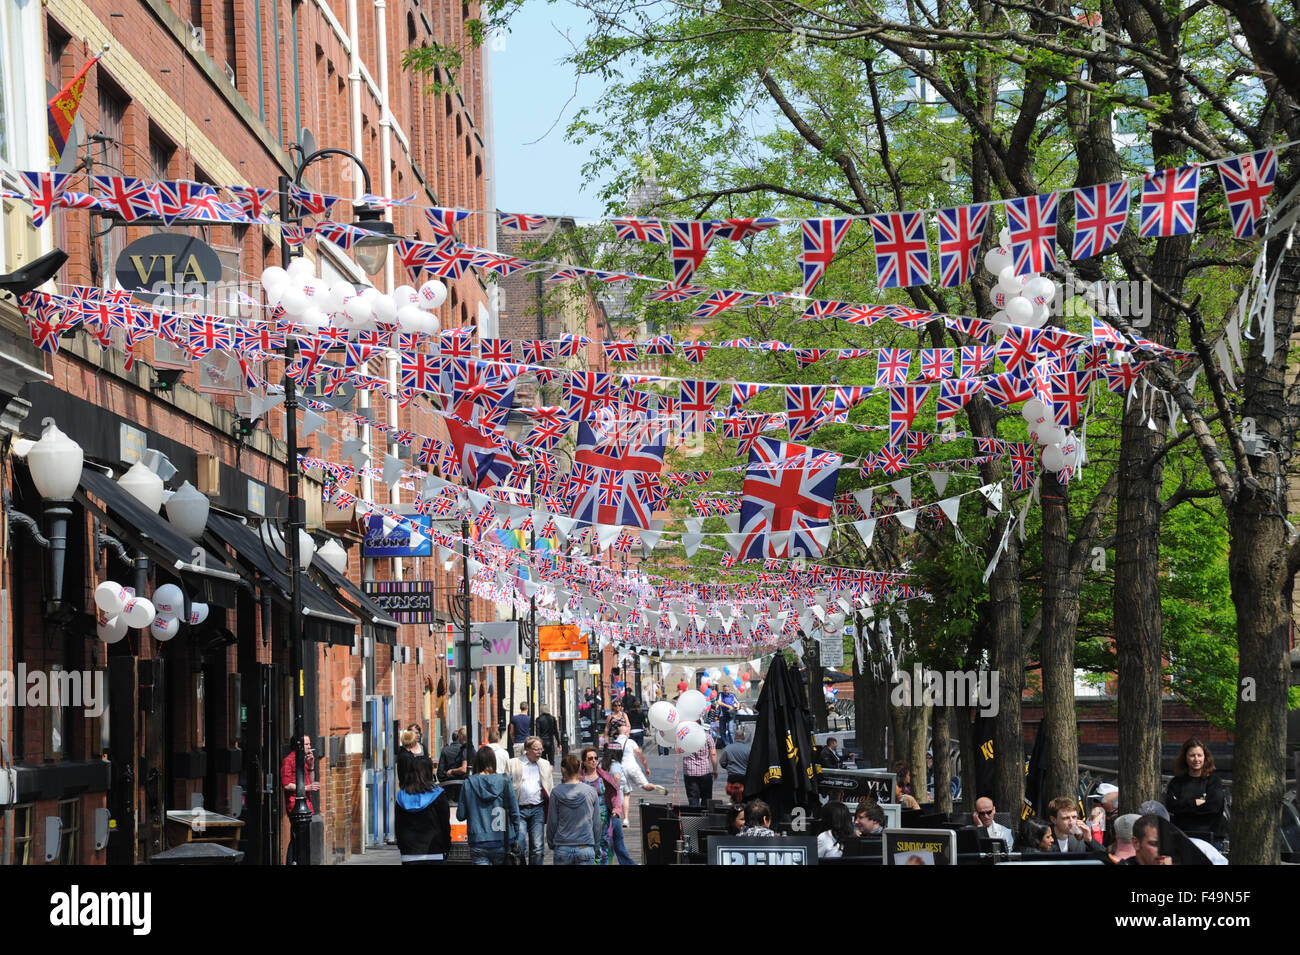 Party bunting on Canal Street in the heart of Manchester's Gay village to celebrate the wedding of William and - Stock Image